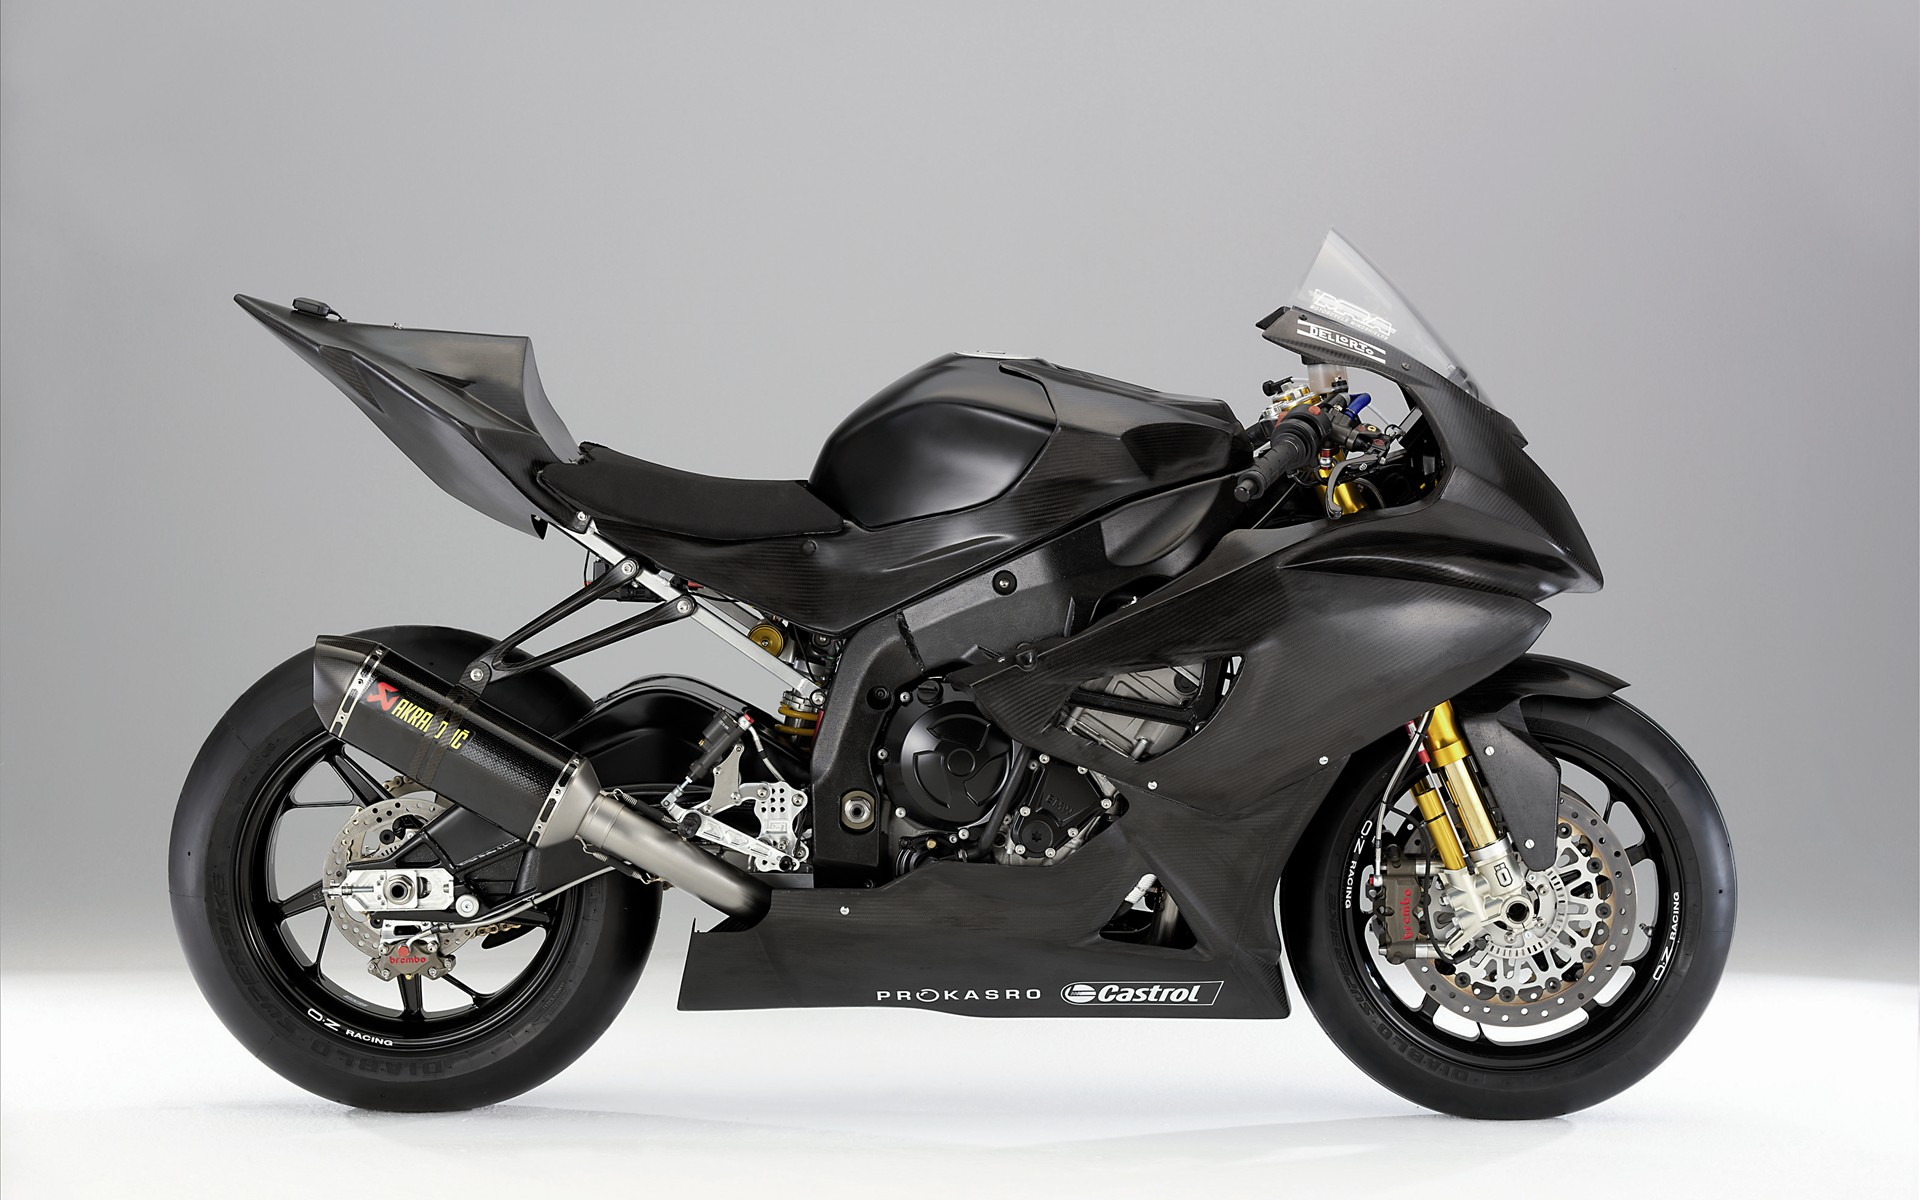 BMW S 1000 RR Black 360.11 Kb